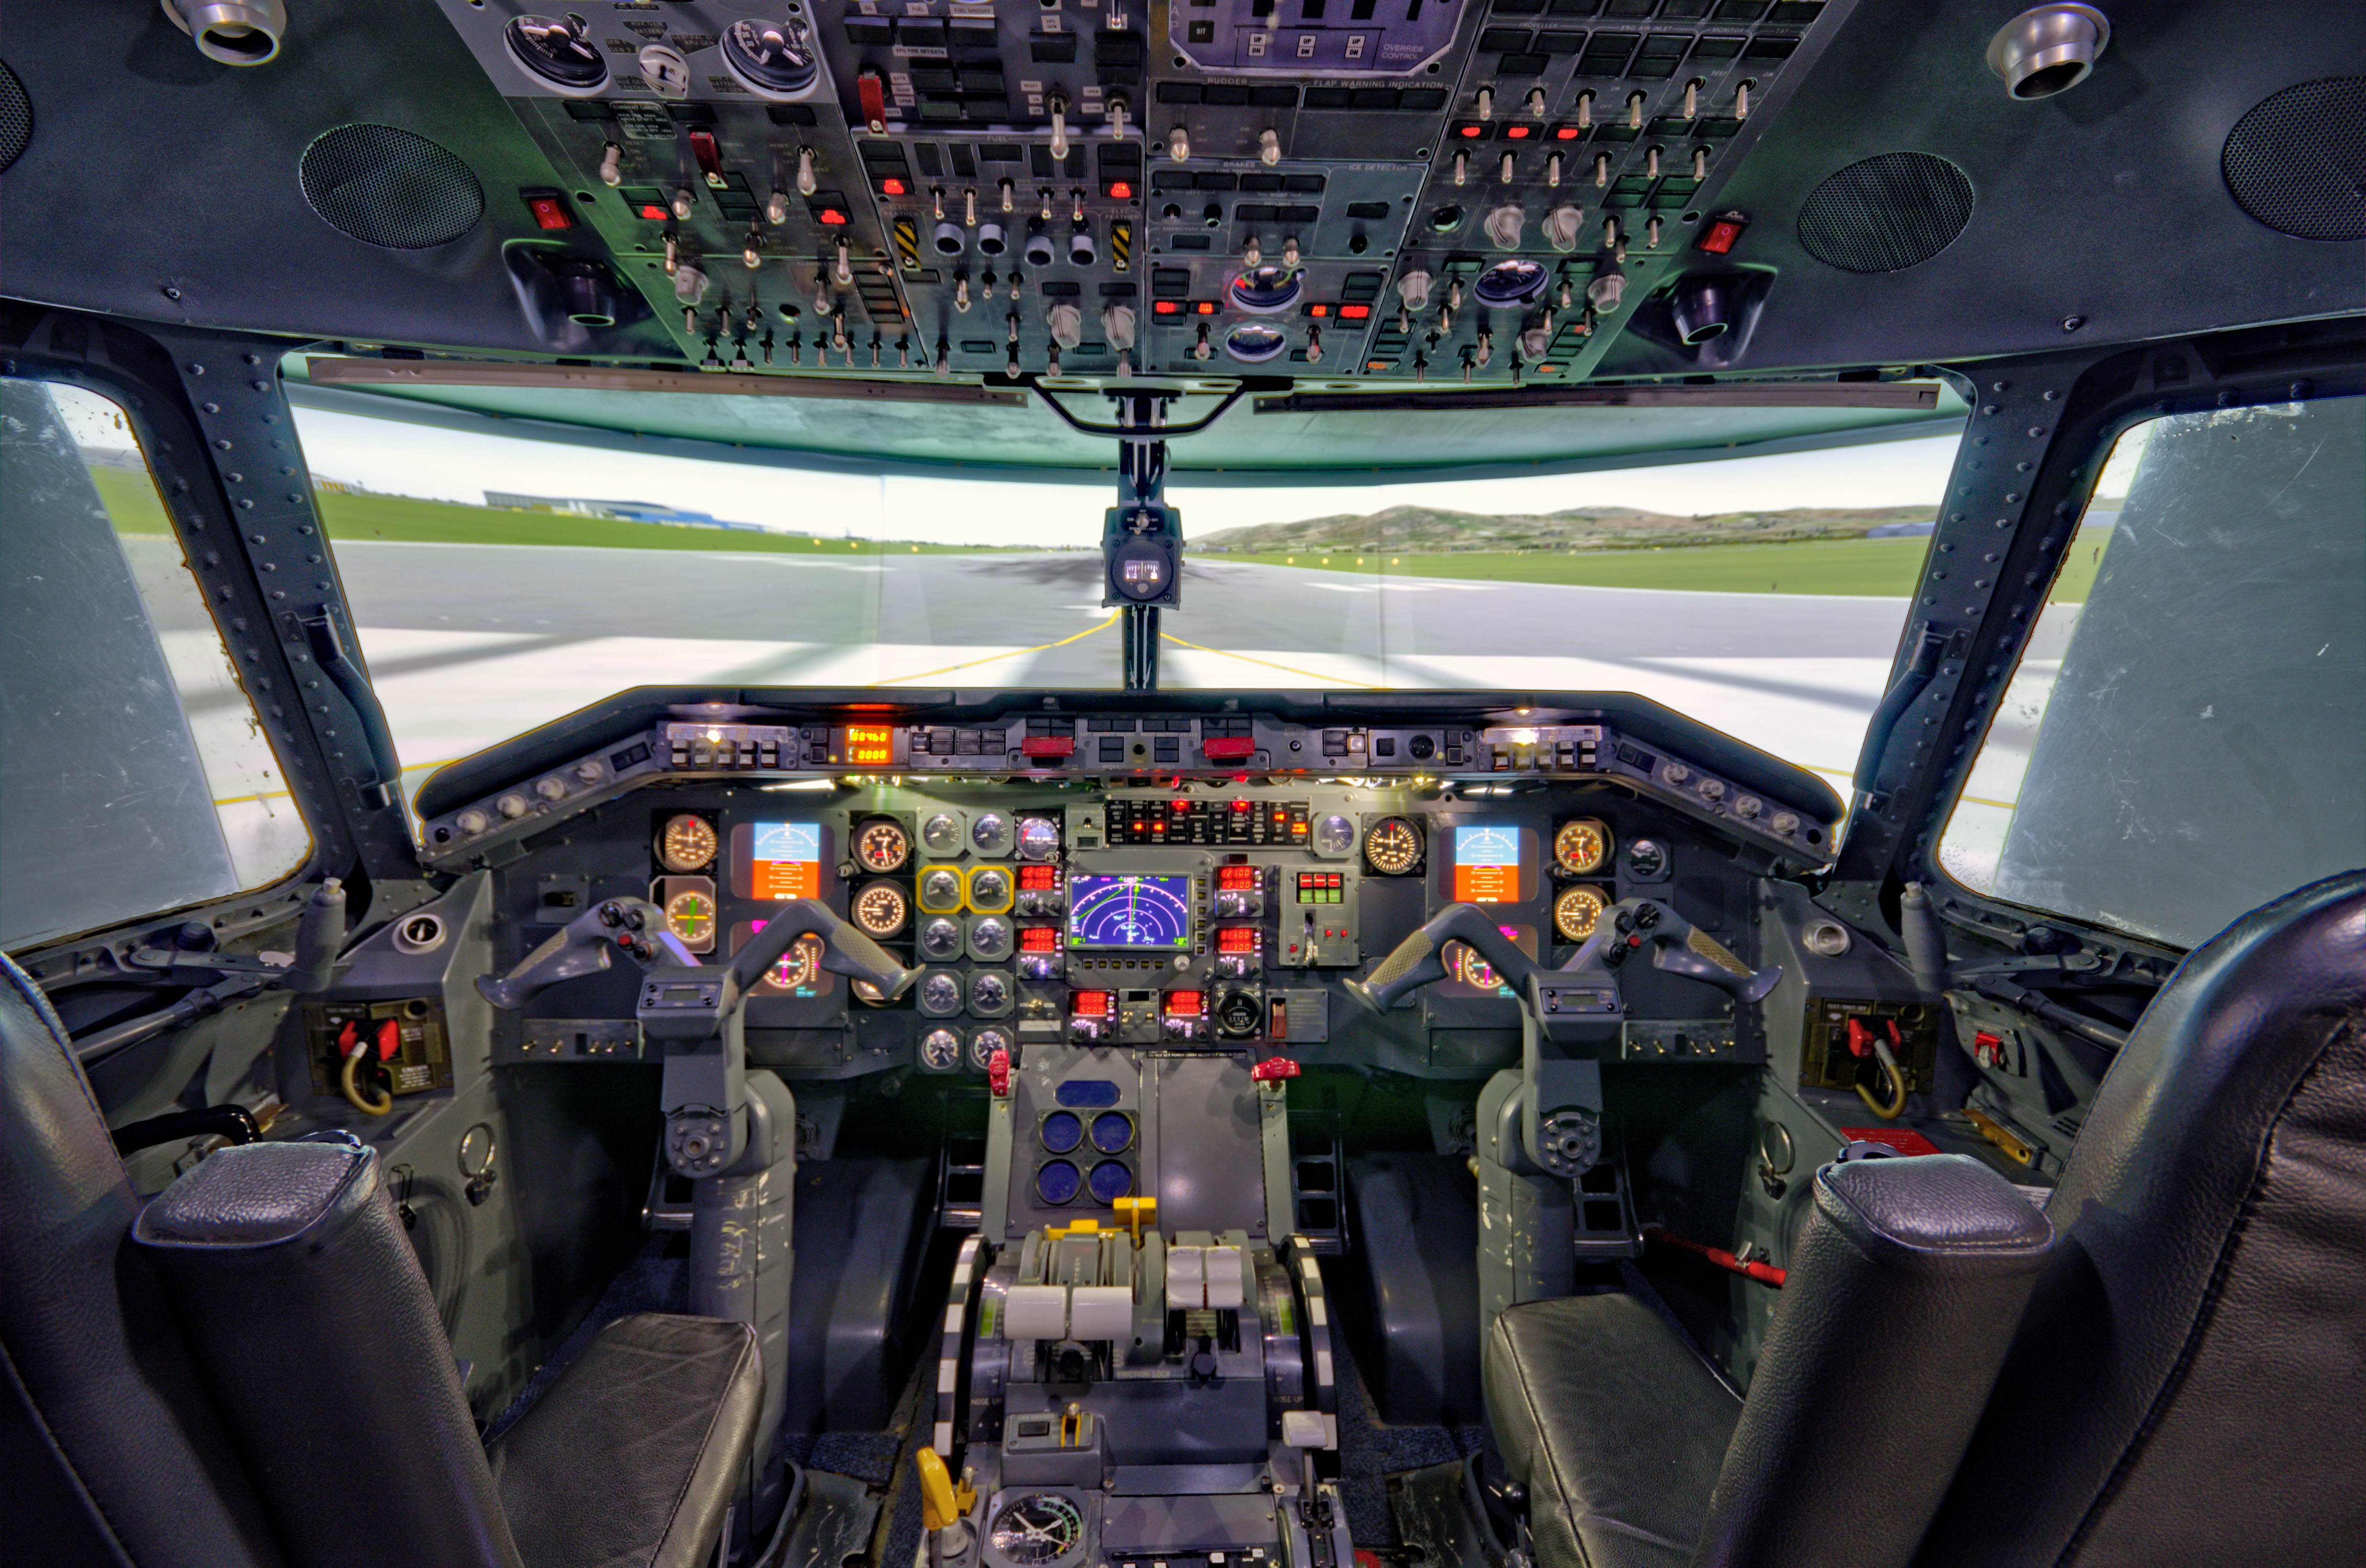 Simex, a South African company specialising in the fabrication and  upgrading of flight training devices like flight simulators, contracted  Tectra Automation ...